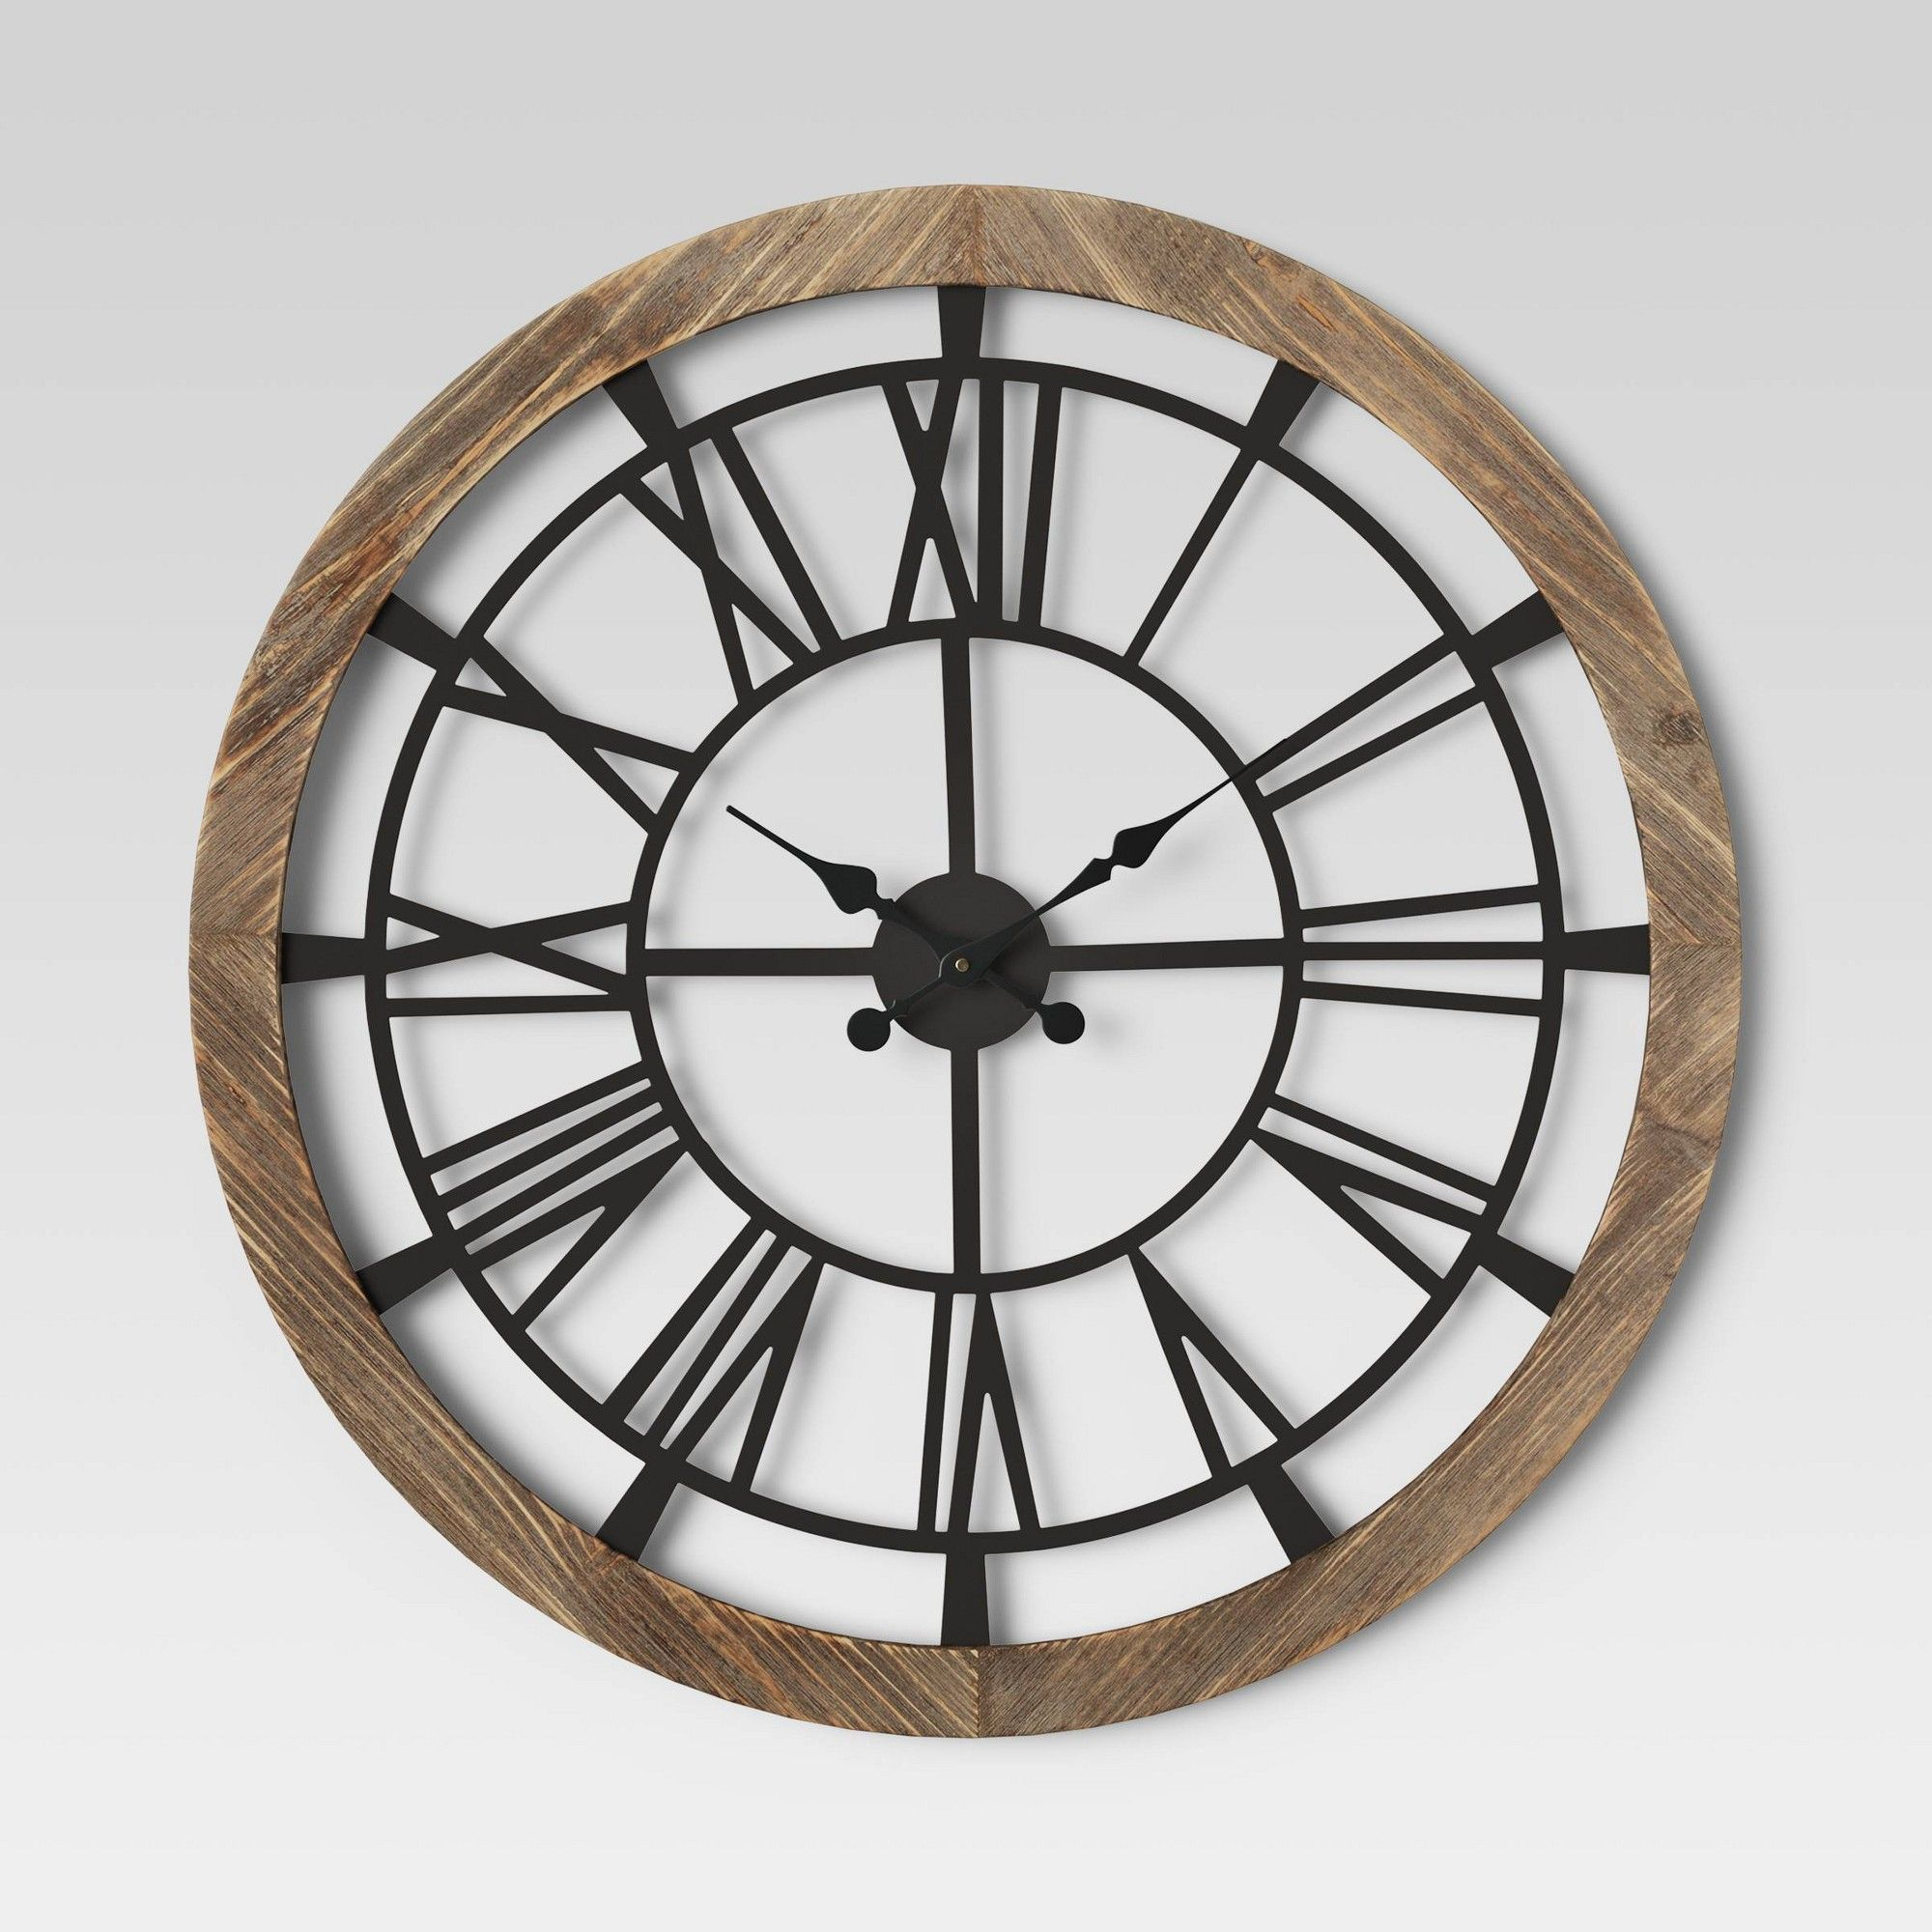 32 Wood And Metal Wall Clock Brown Threshold Black Brown Large Black Wall Clock Large Metal Wall Clock Metal Wall Clock